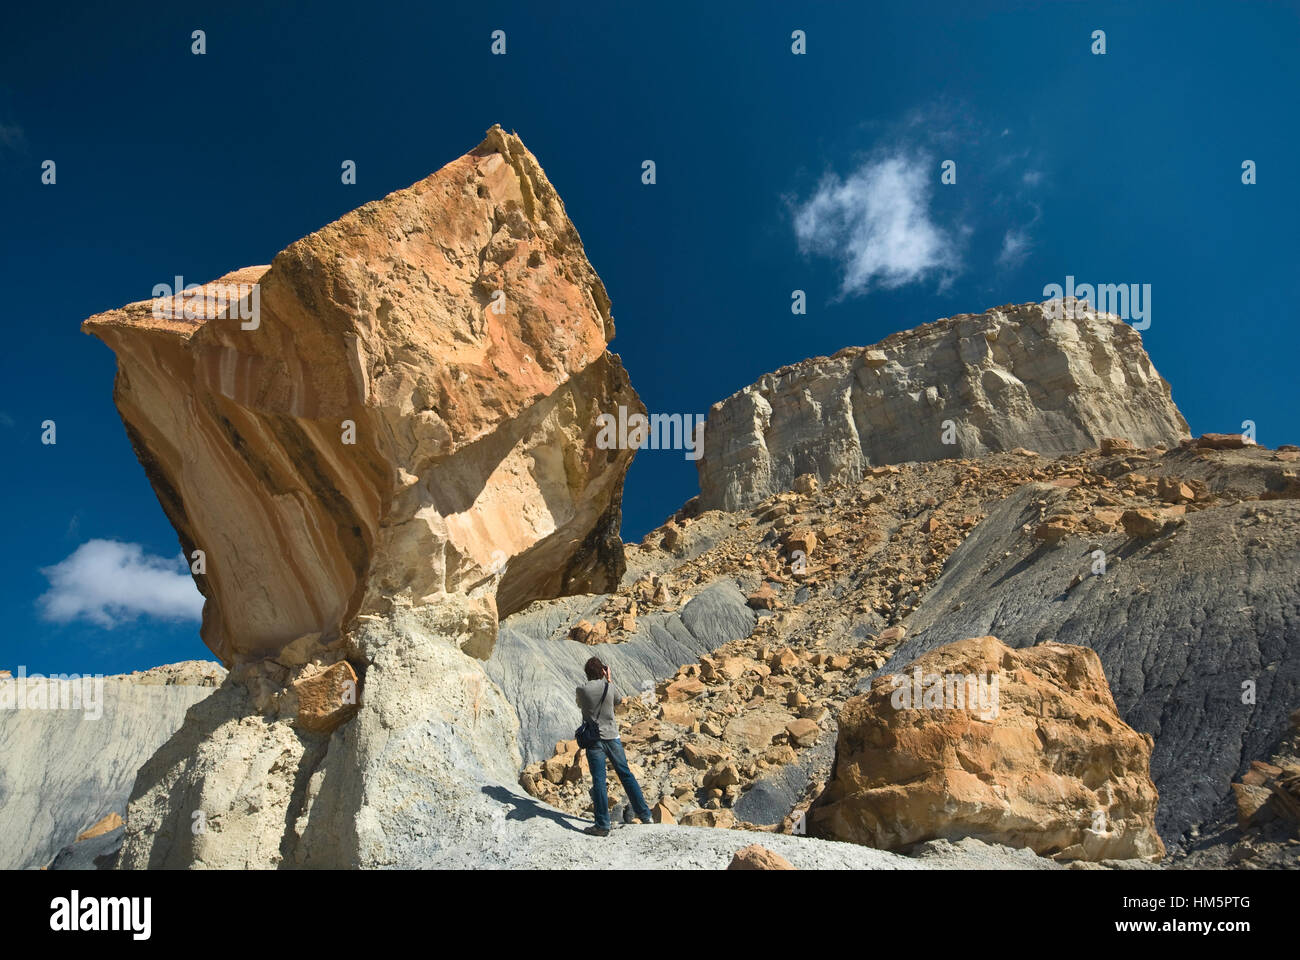 Nipplo massiccio del banco a scala-escalante monumento nat da Smoky Mountain Road vicino al lago Powell, Glen Canyon Immagini Stock